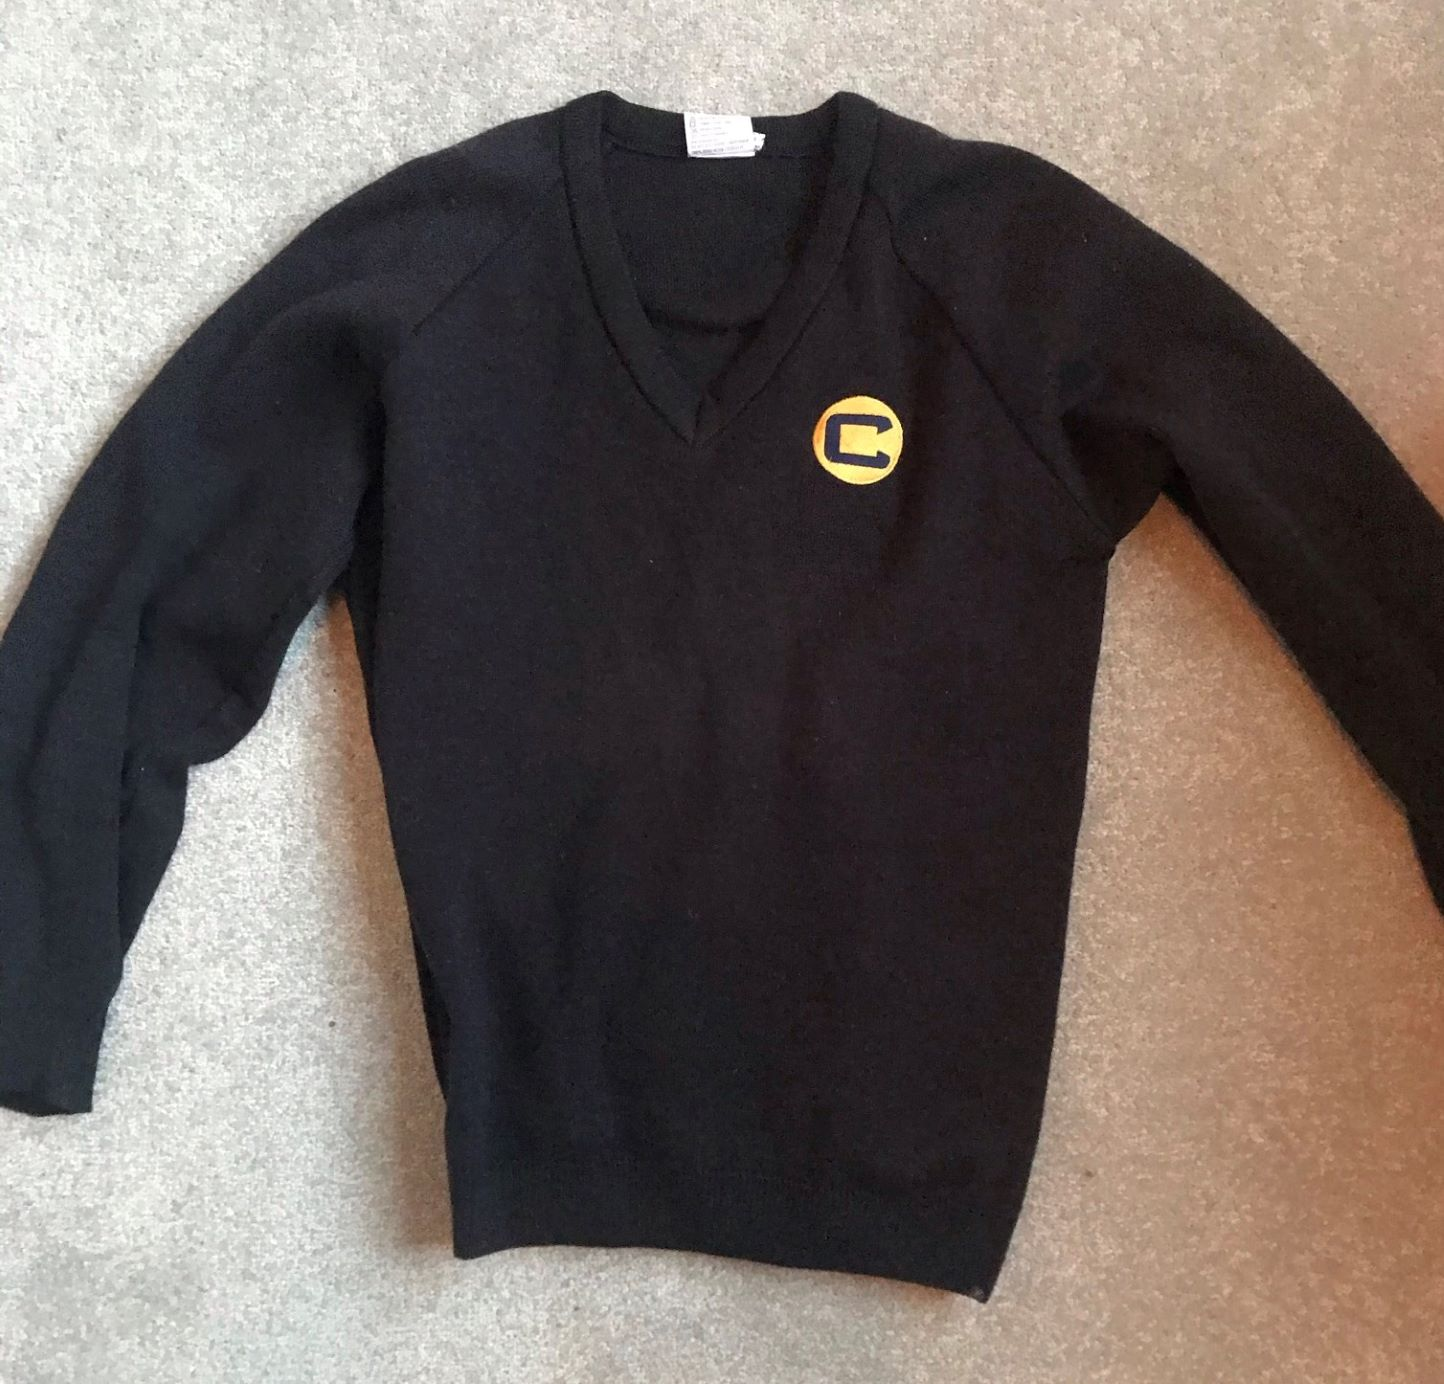 Charter North Jumper: Size 36 Marked